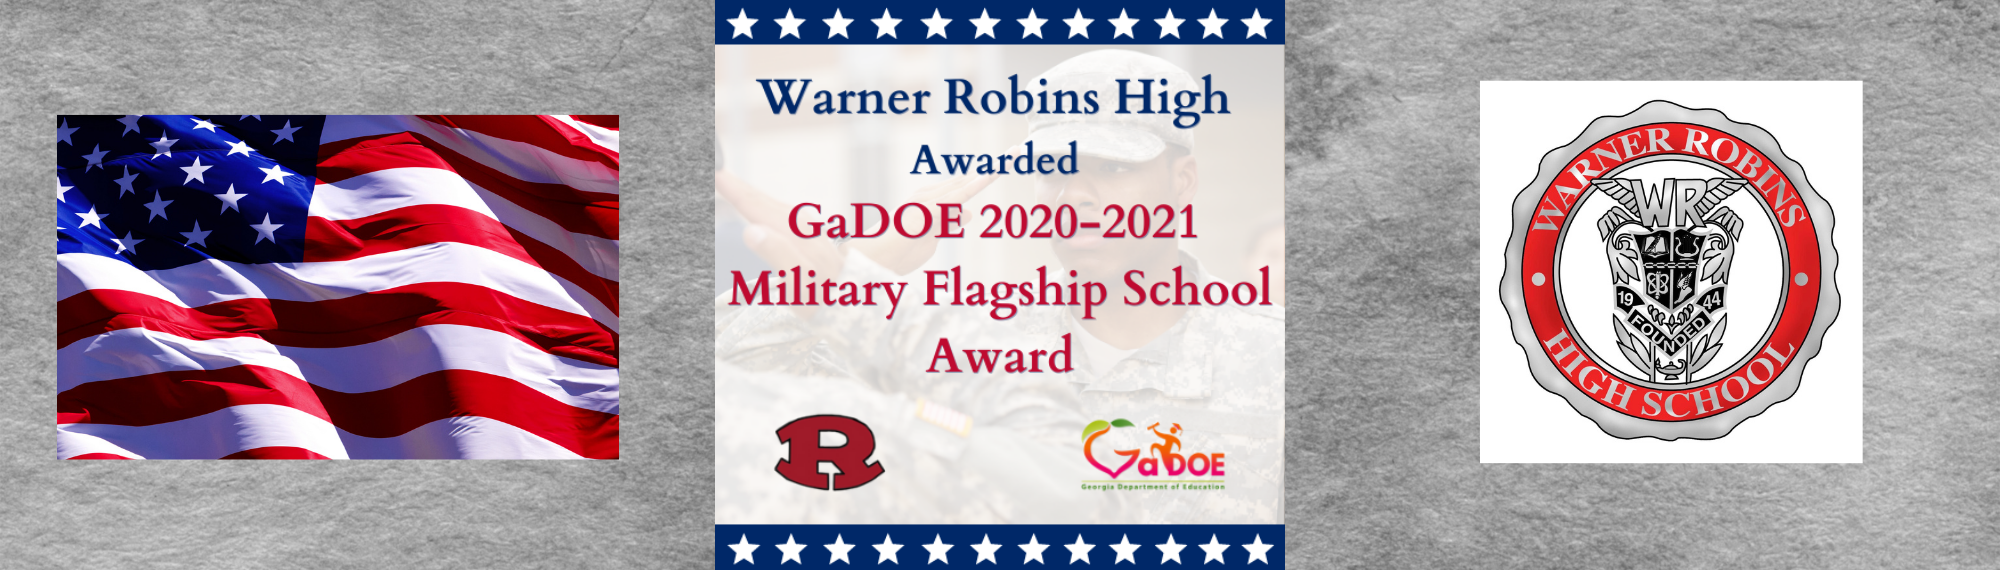 Military Flagship School Award